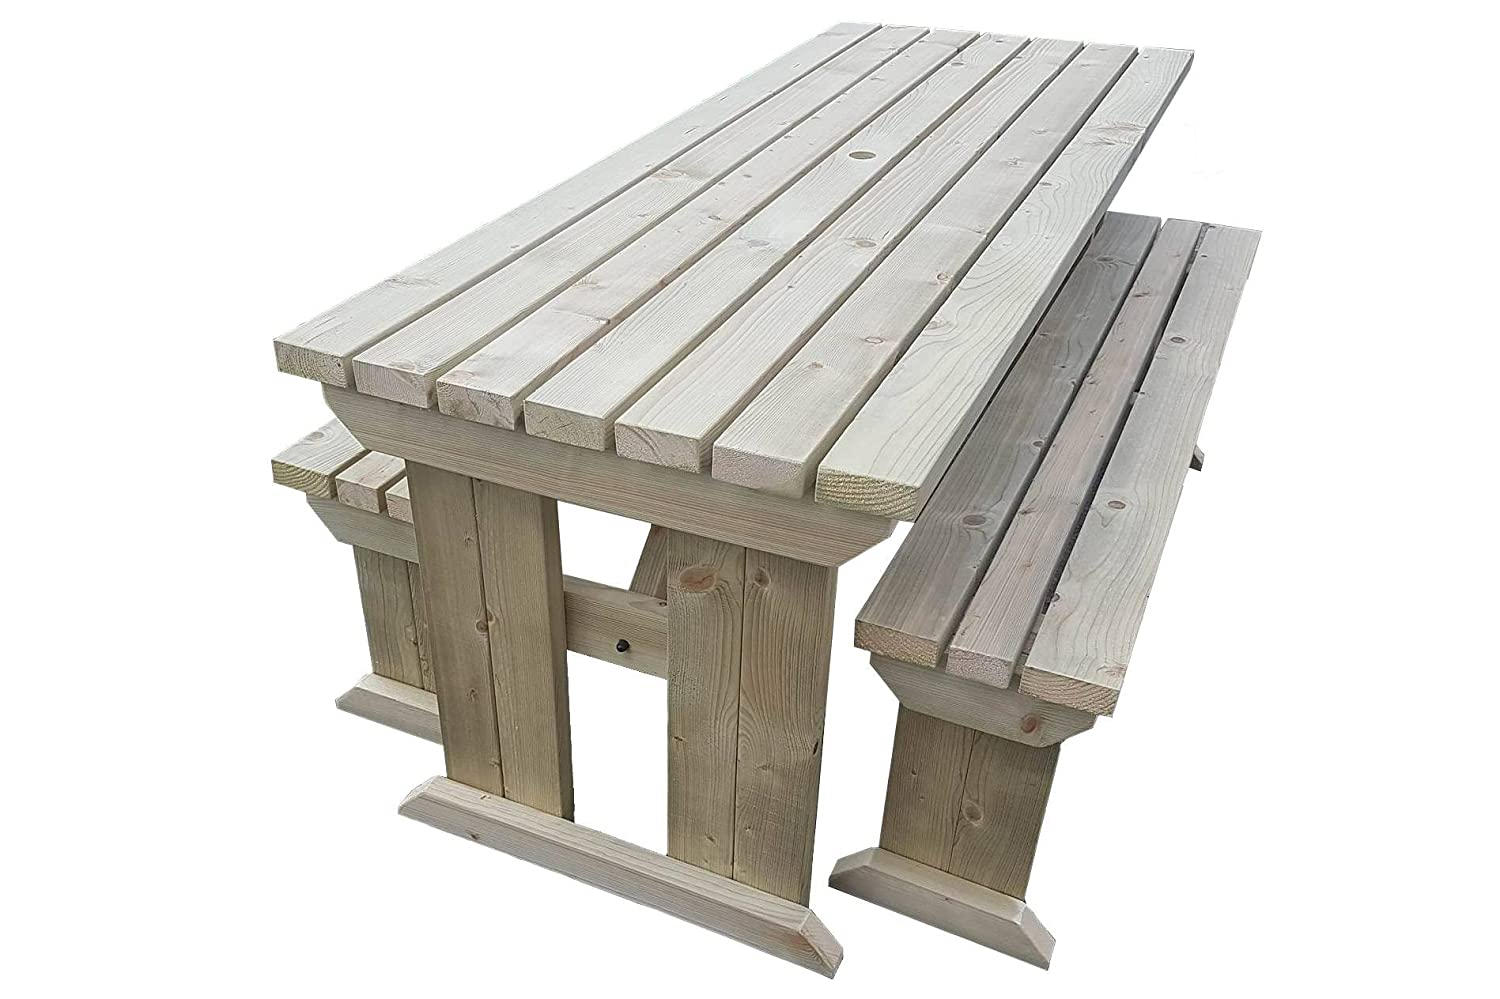 Yews compact garden picnic table and benches space saving furniture for small spaces heavy duty handmade in uk pressure treated light green